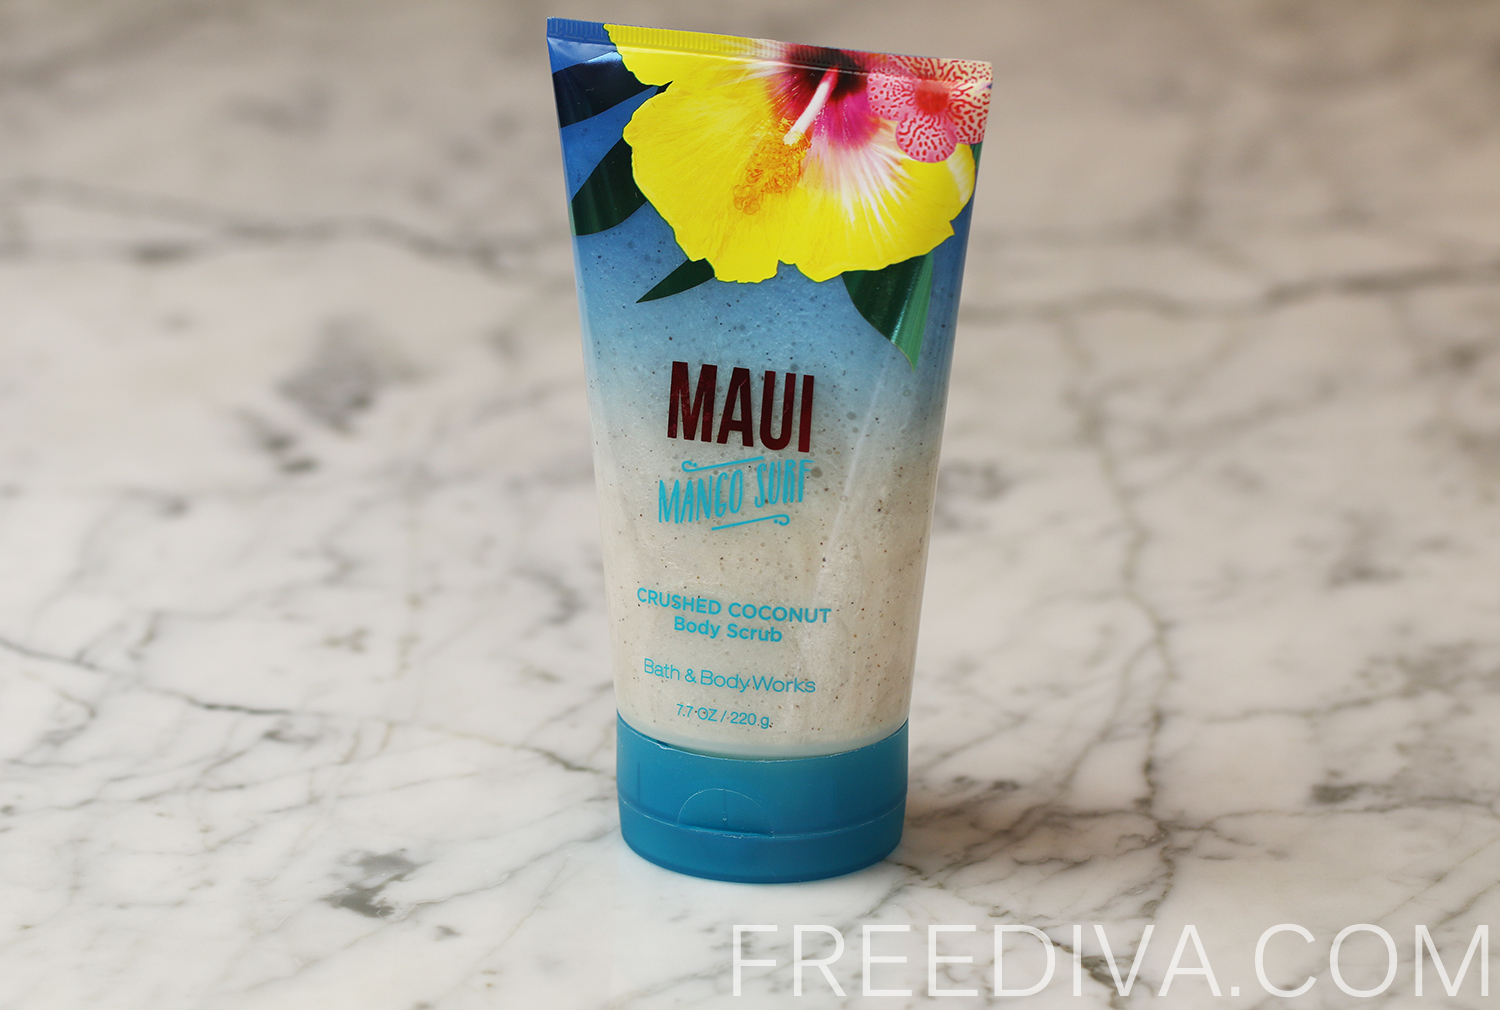 Maui Mango Surf Body Scrub Bath & Body Works